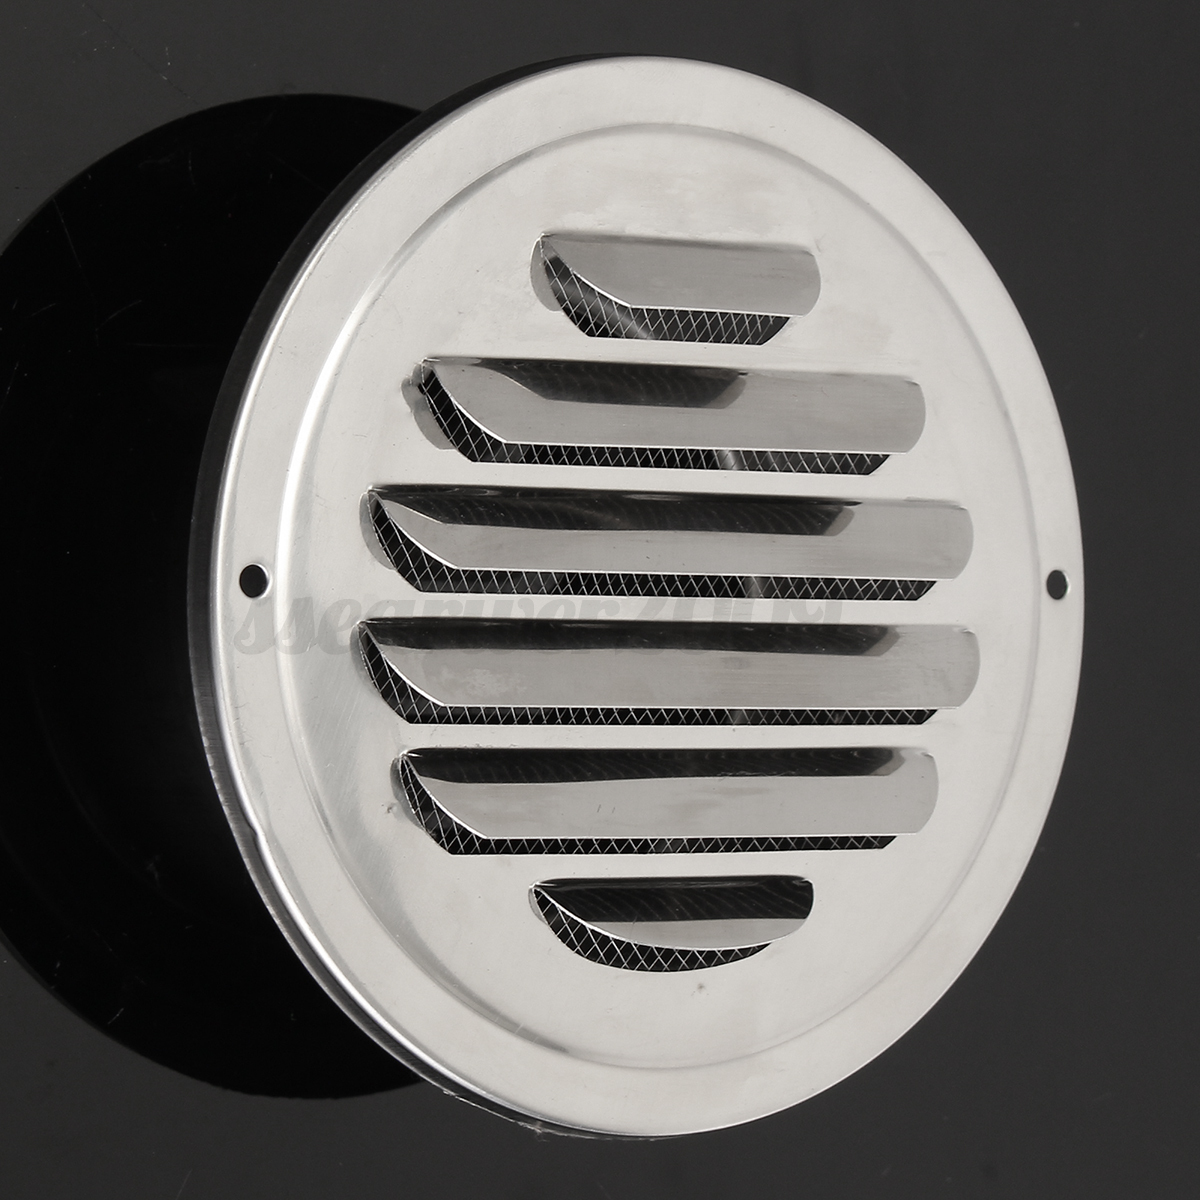 Stainless Steel Air Grille : Stainless steel circle air vent grille door ventilation